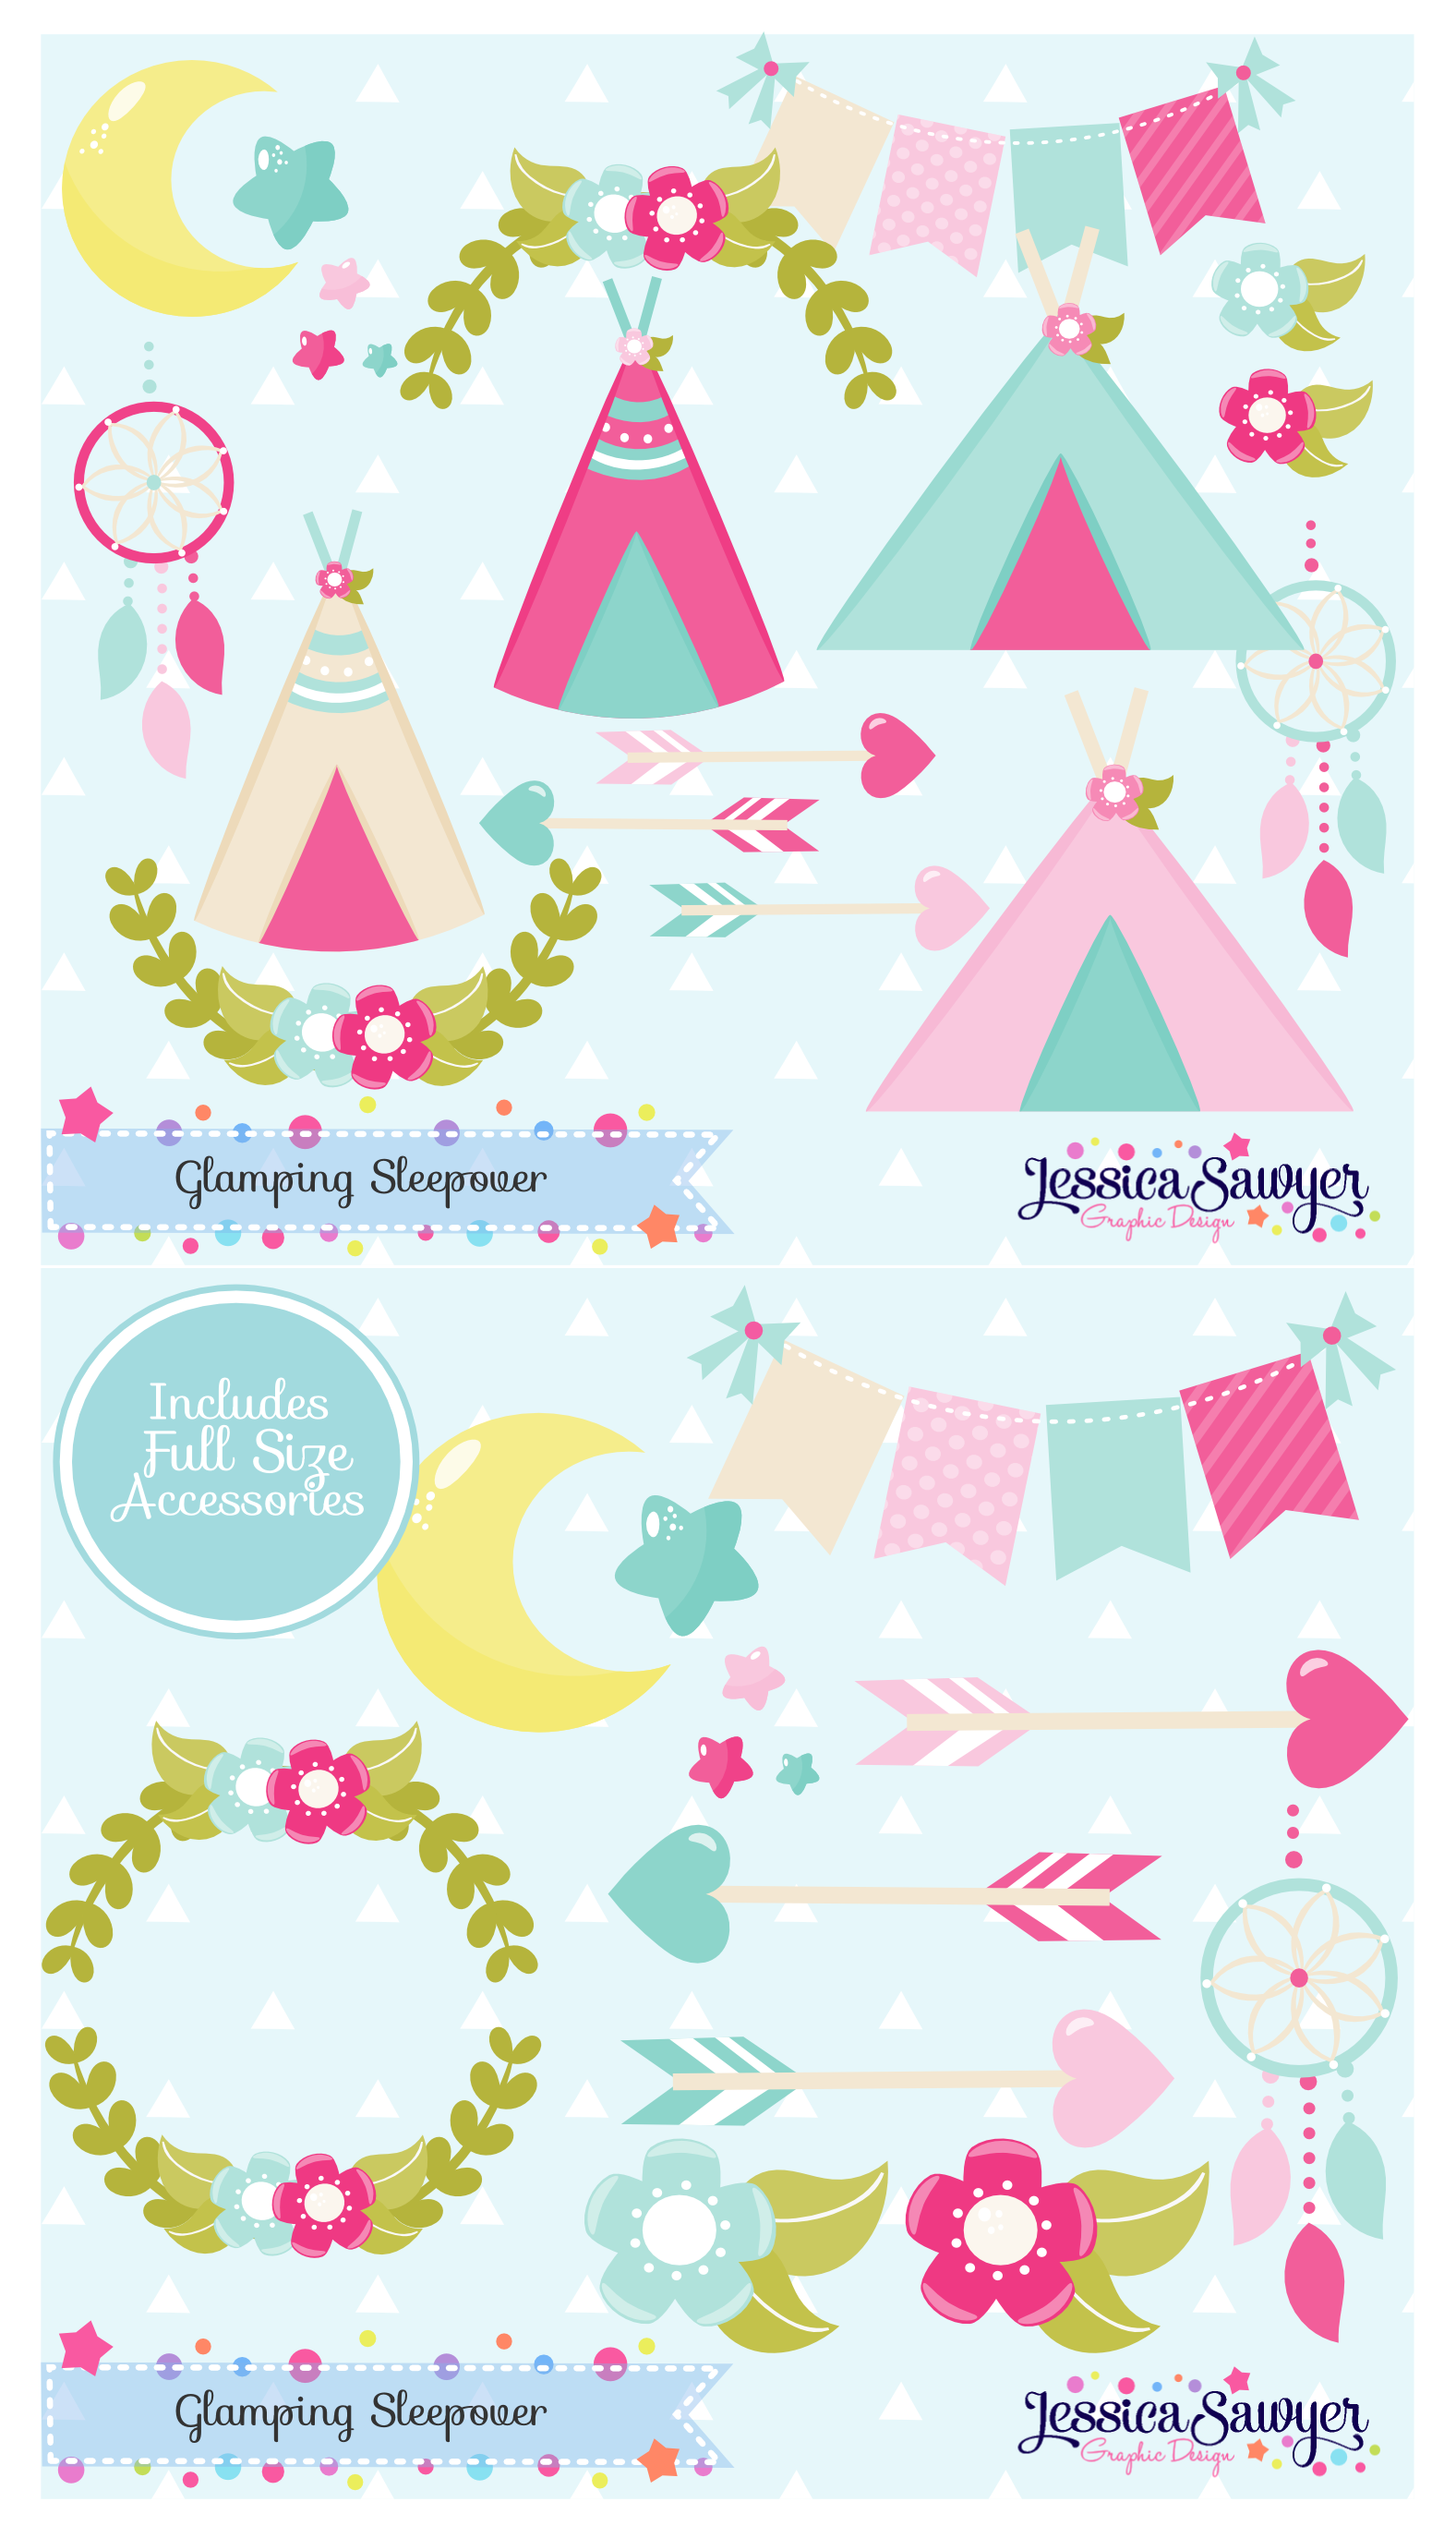 Glamping clipart for camping party or sleepover, crafts, and.